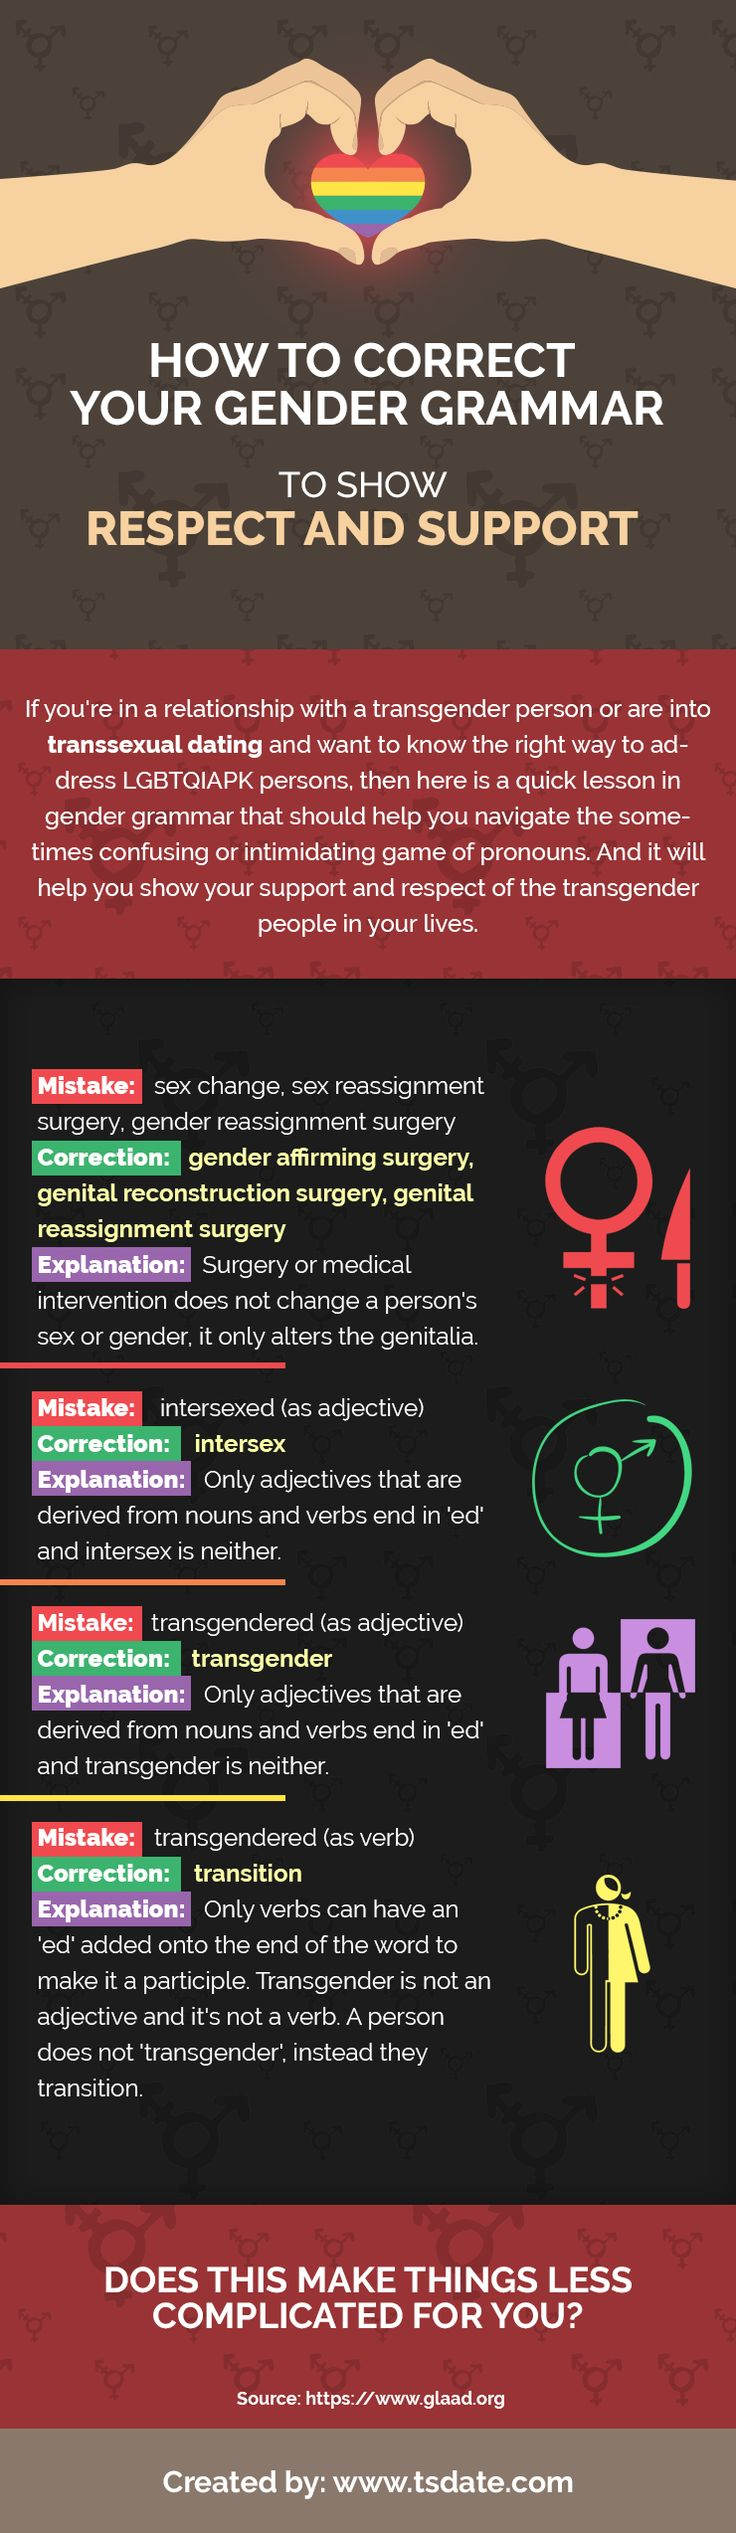 If you're into transsexual dating, you should be aware of these gender terms.